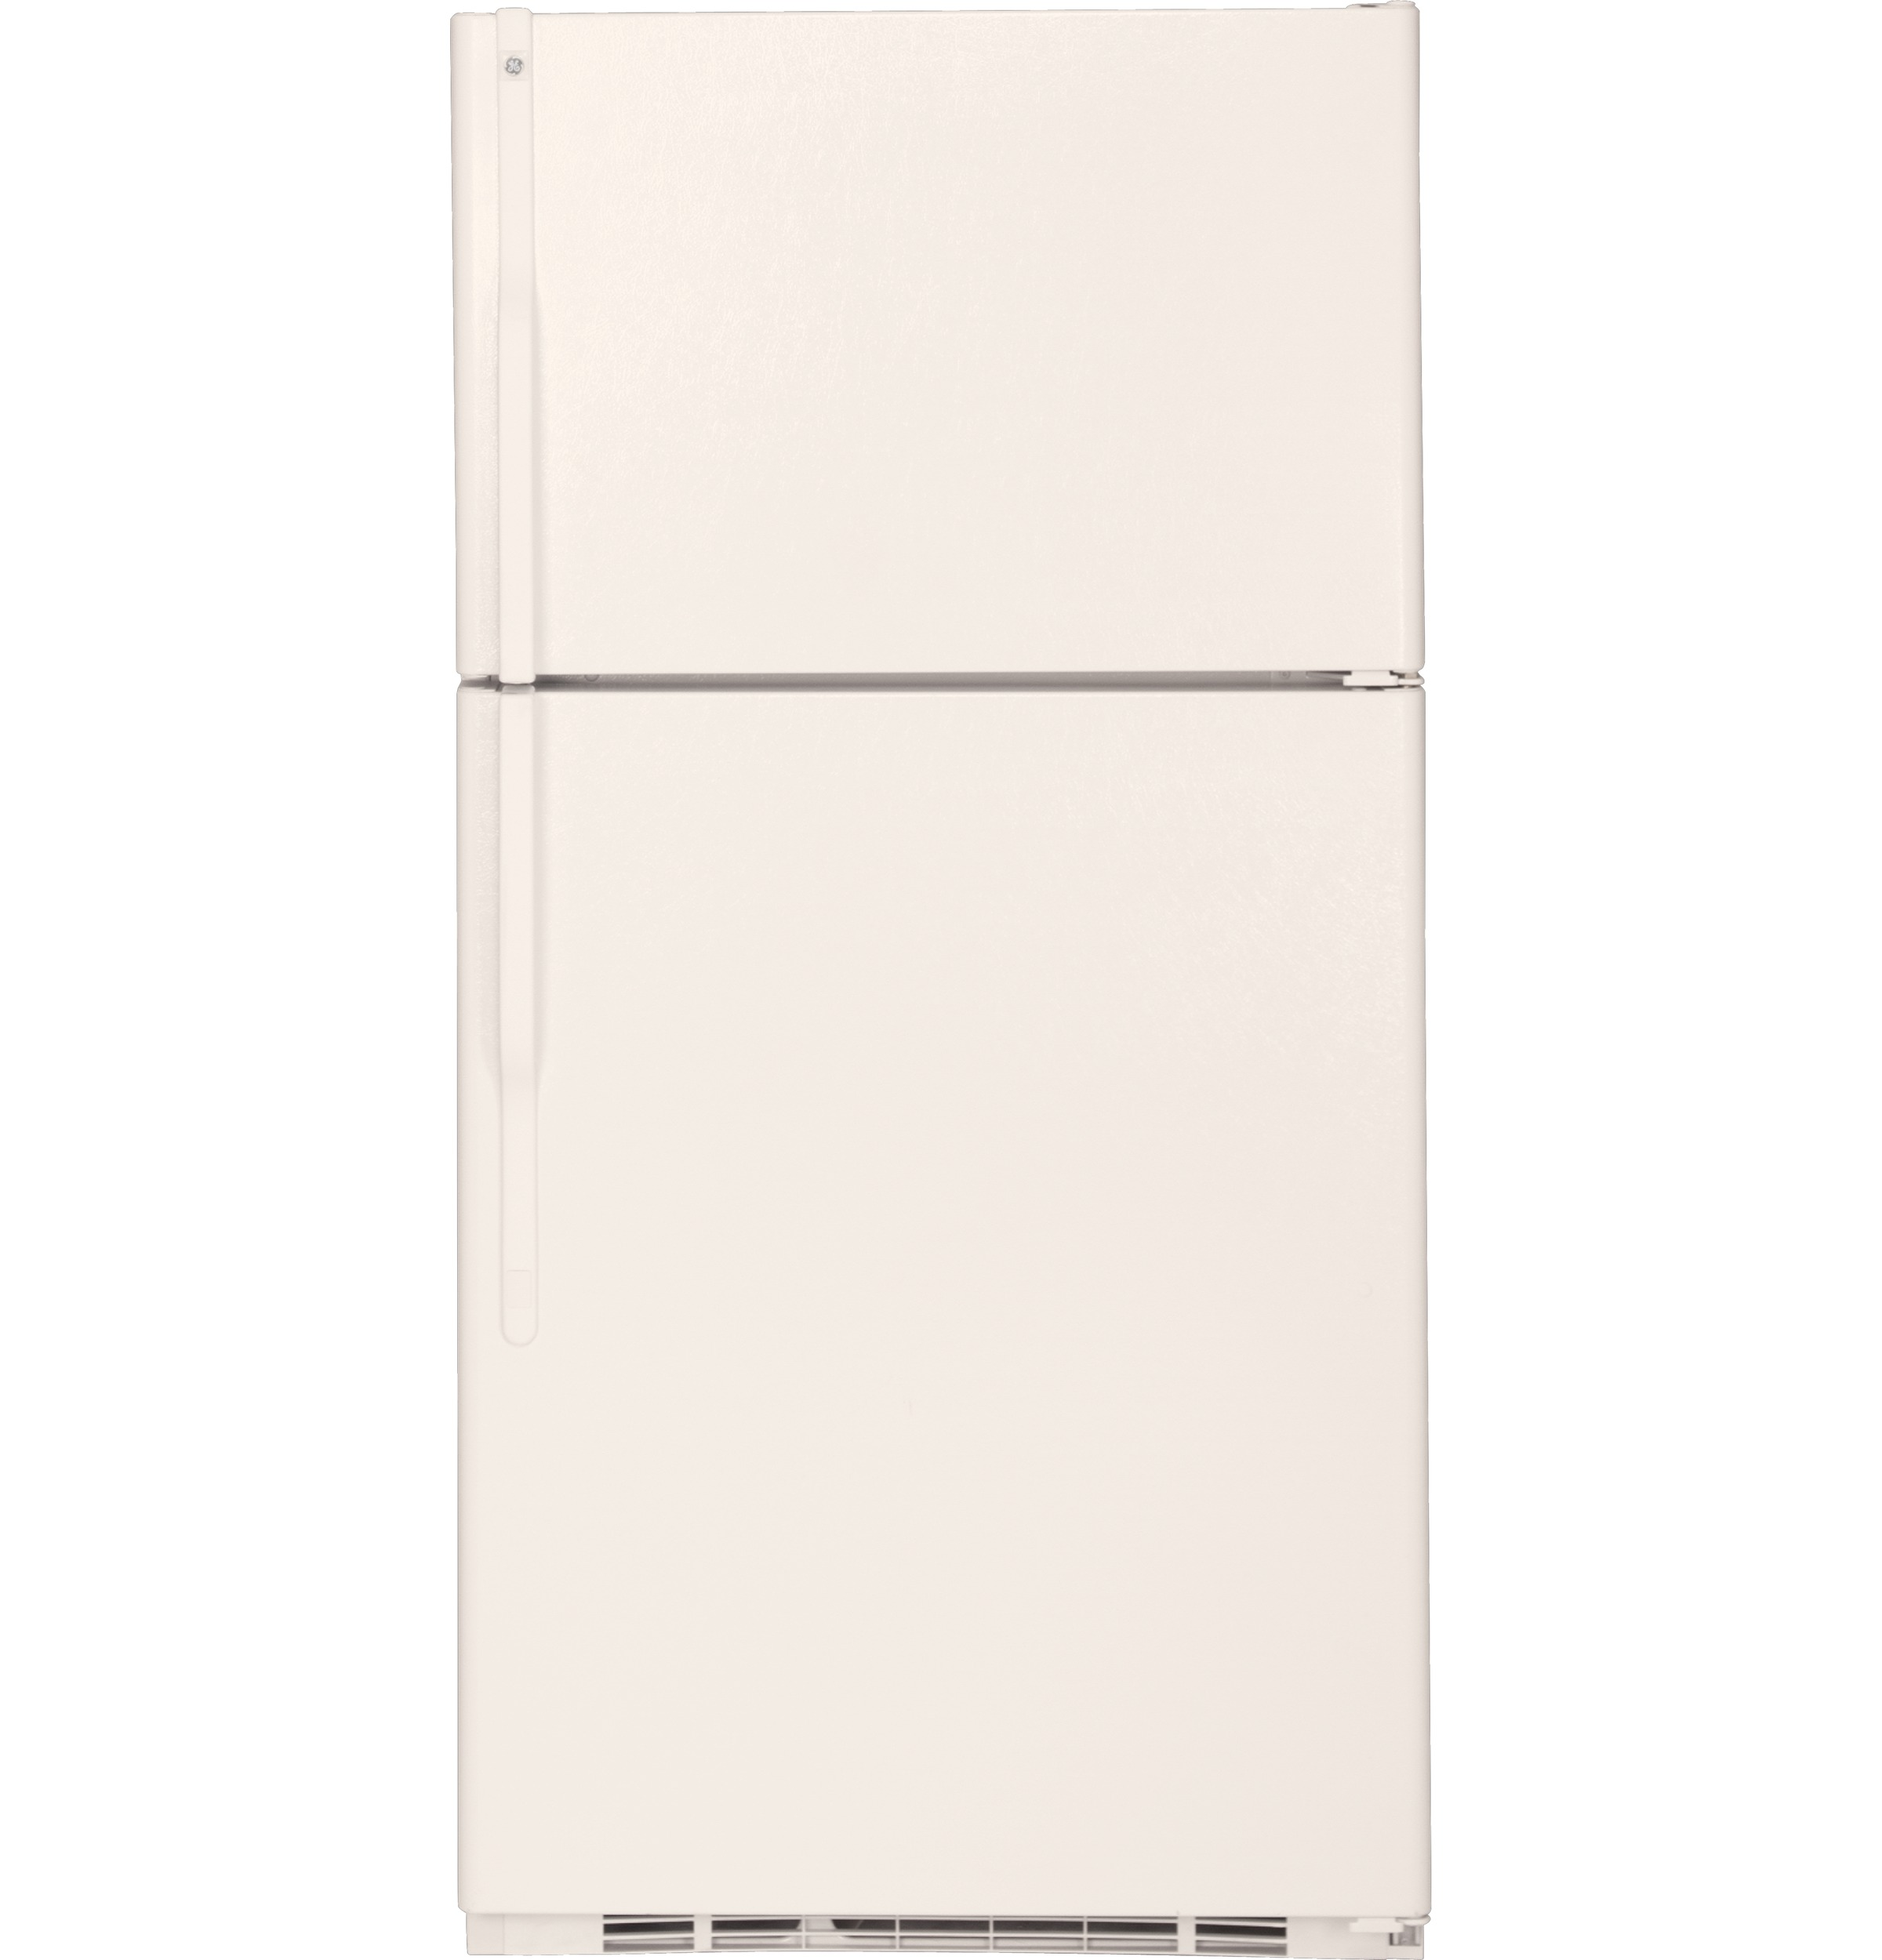 GE® 21.7 Cu. Ft. Top-Freezer Refrigerator